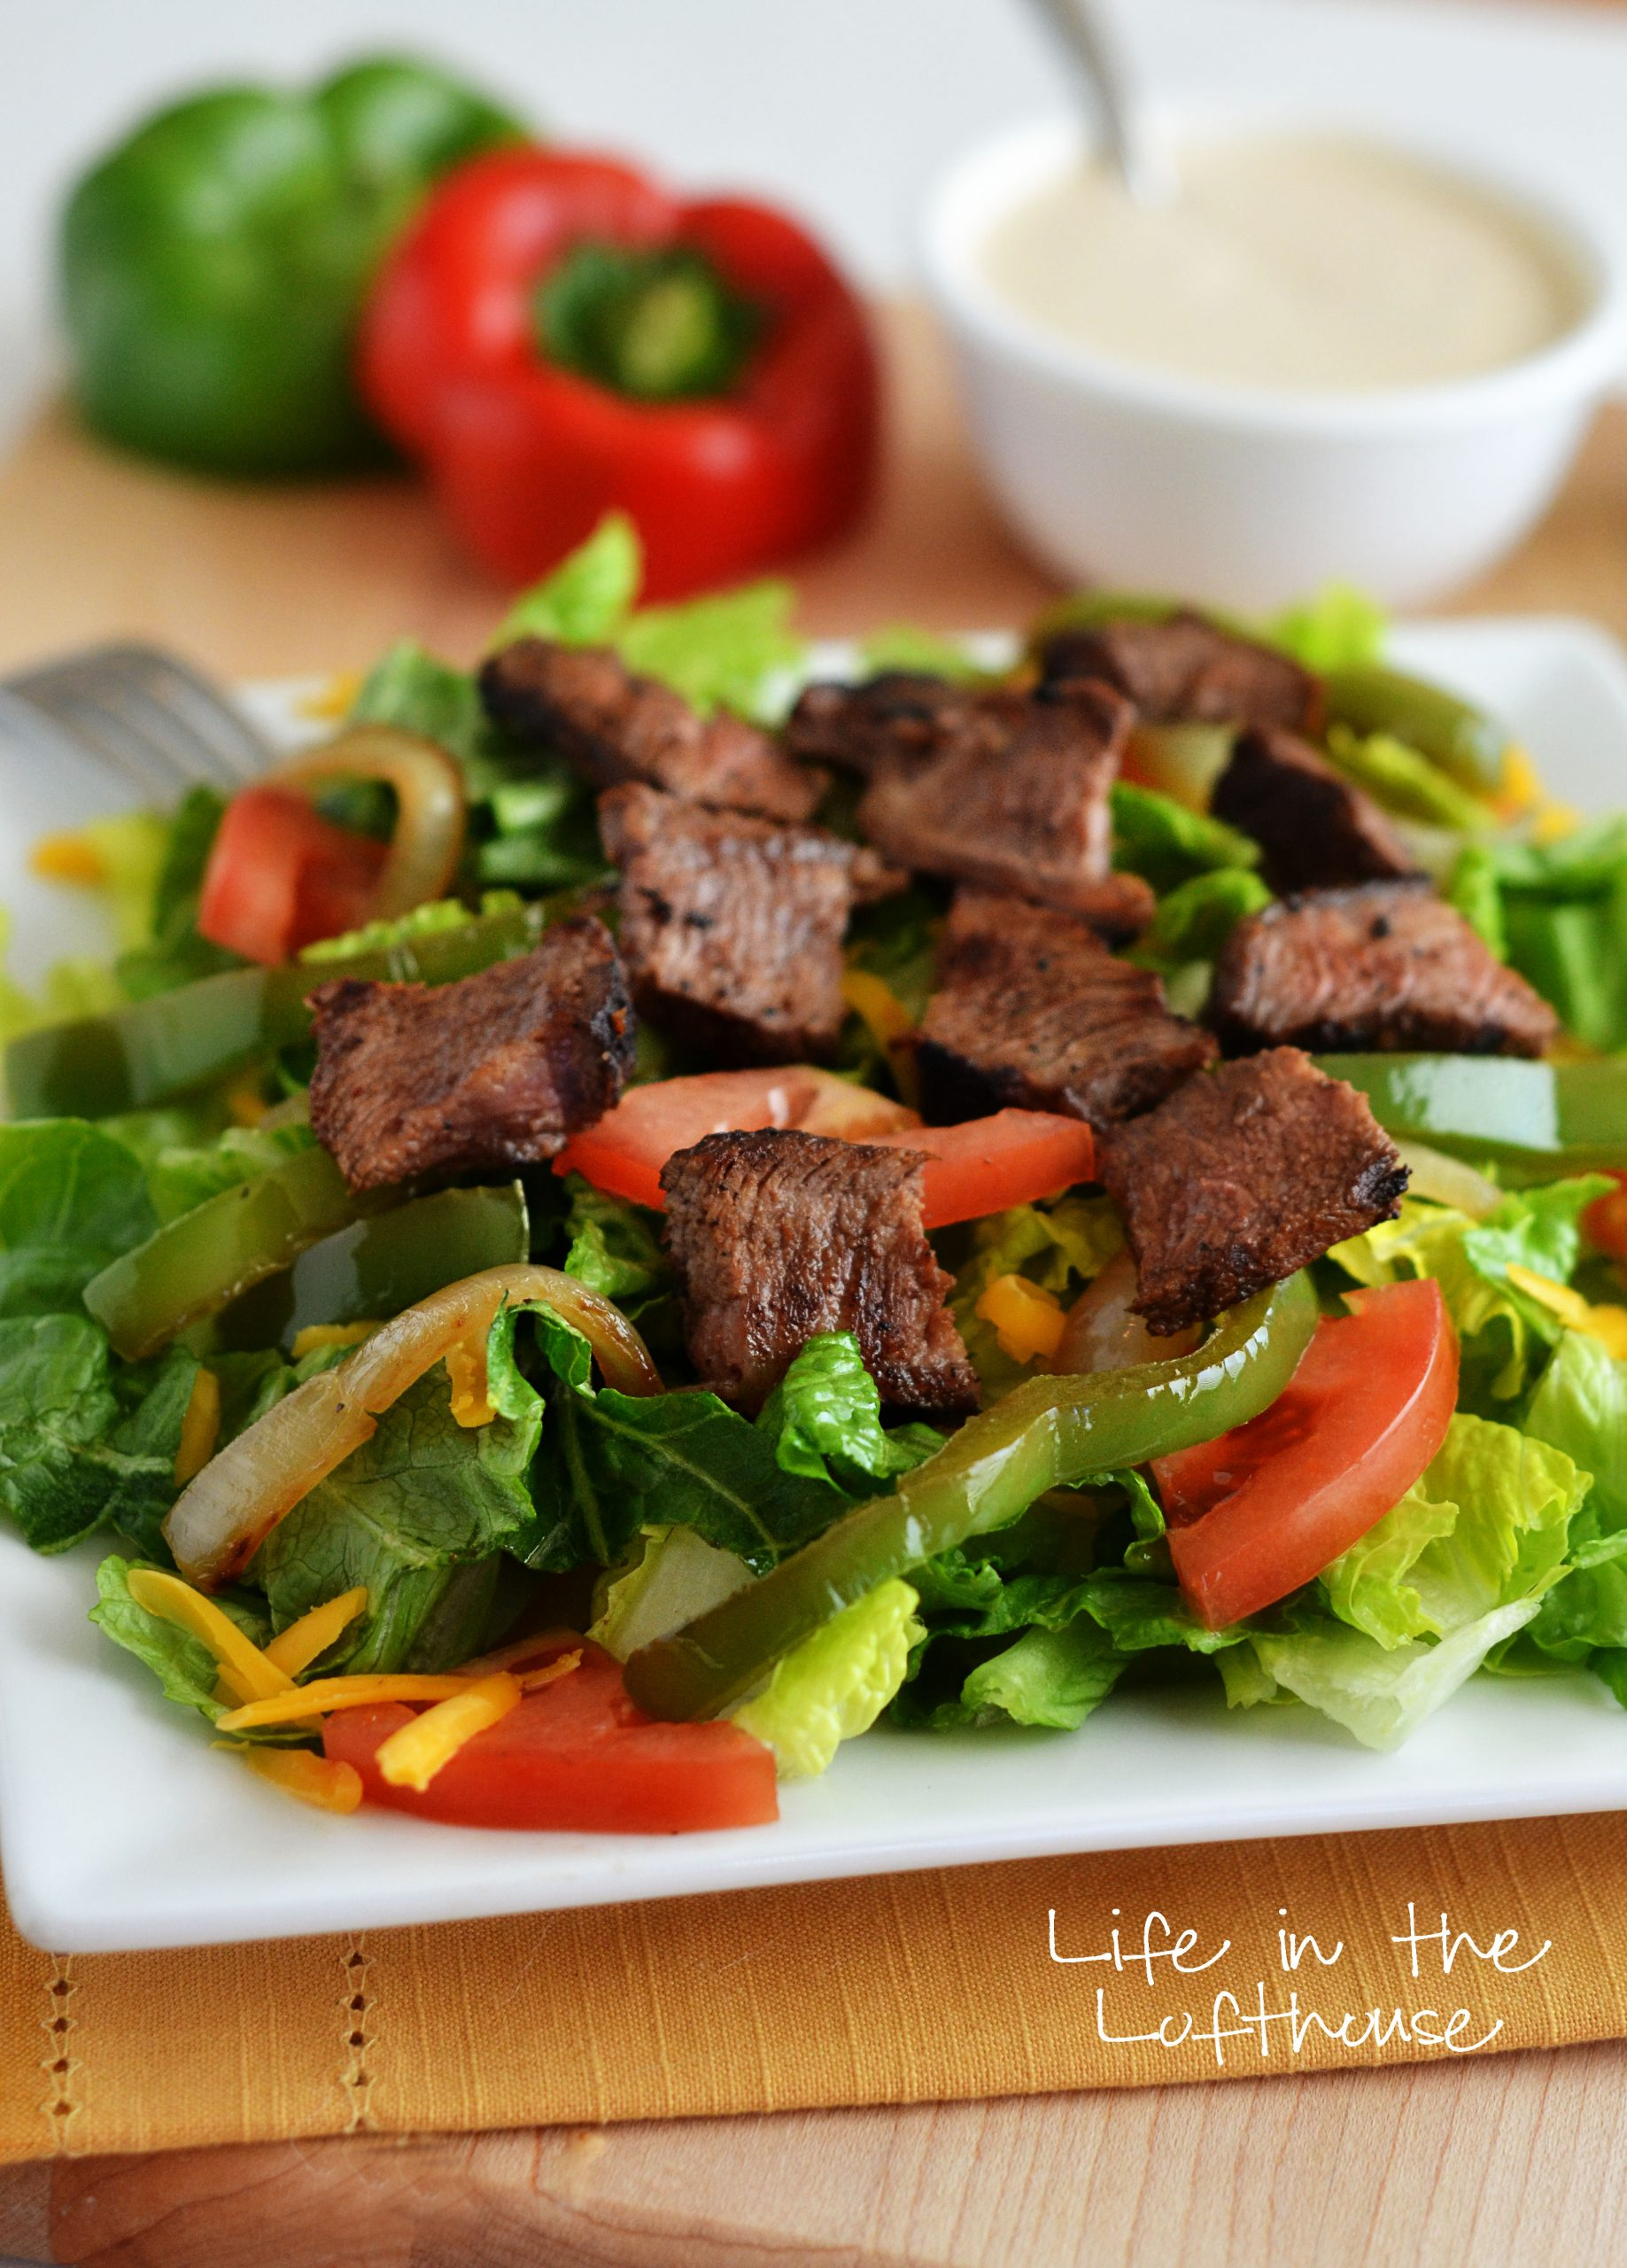 Steak Fajita Salad with Chipotle Ranch Dressing